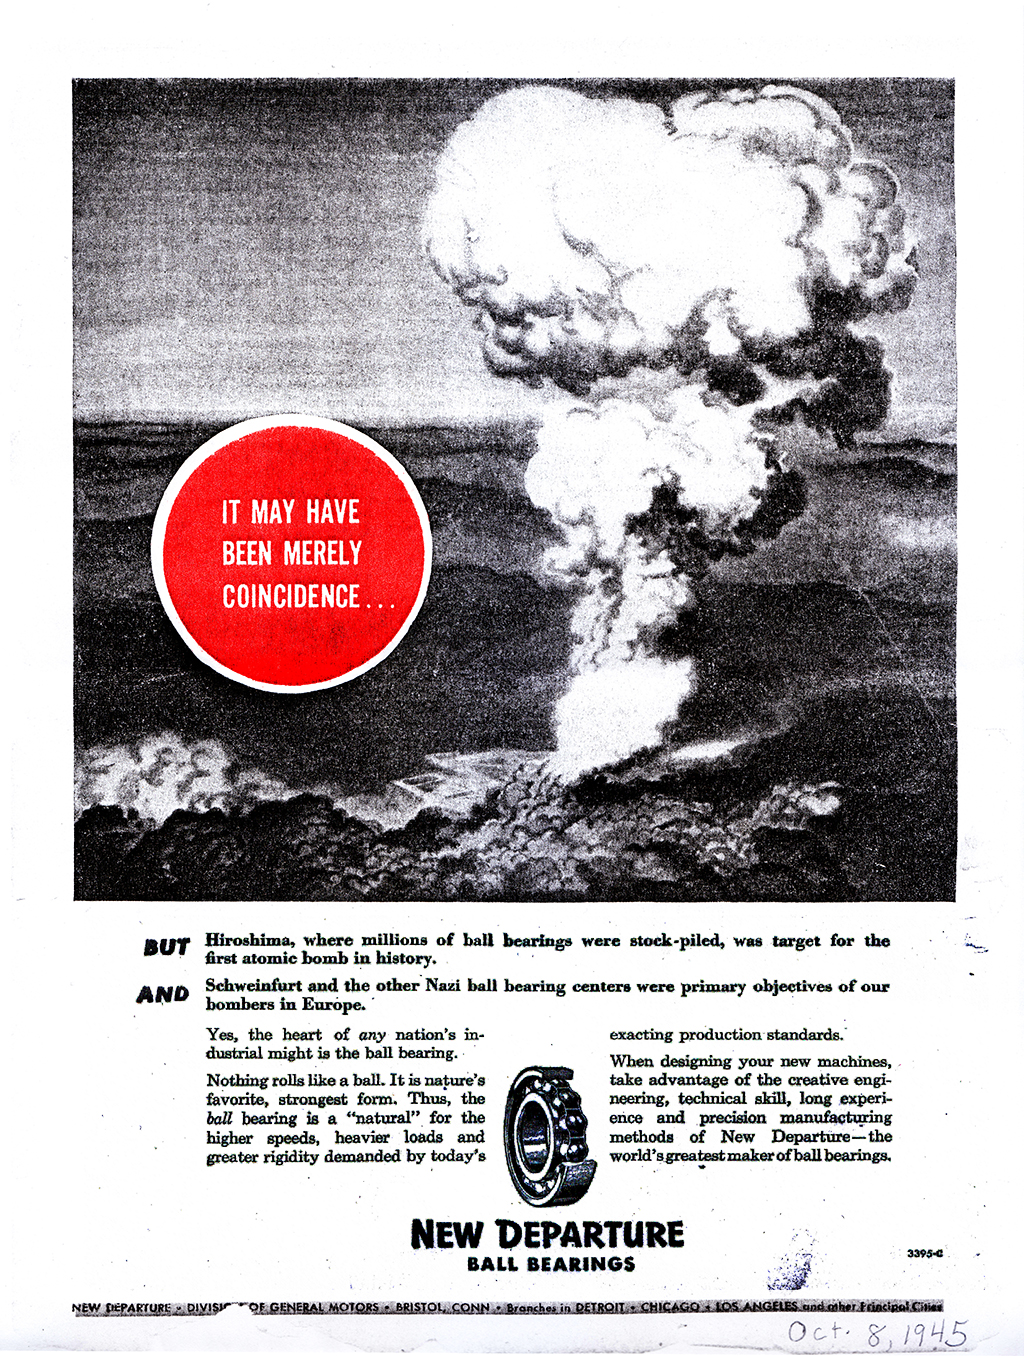 C-_Users_Linh-Dinh_Pictures_MP-Navigator-EX_2015_04_25_Ball-bearing-ad-with-atomic-bomb's-mushroom-cloud